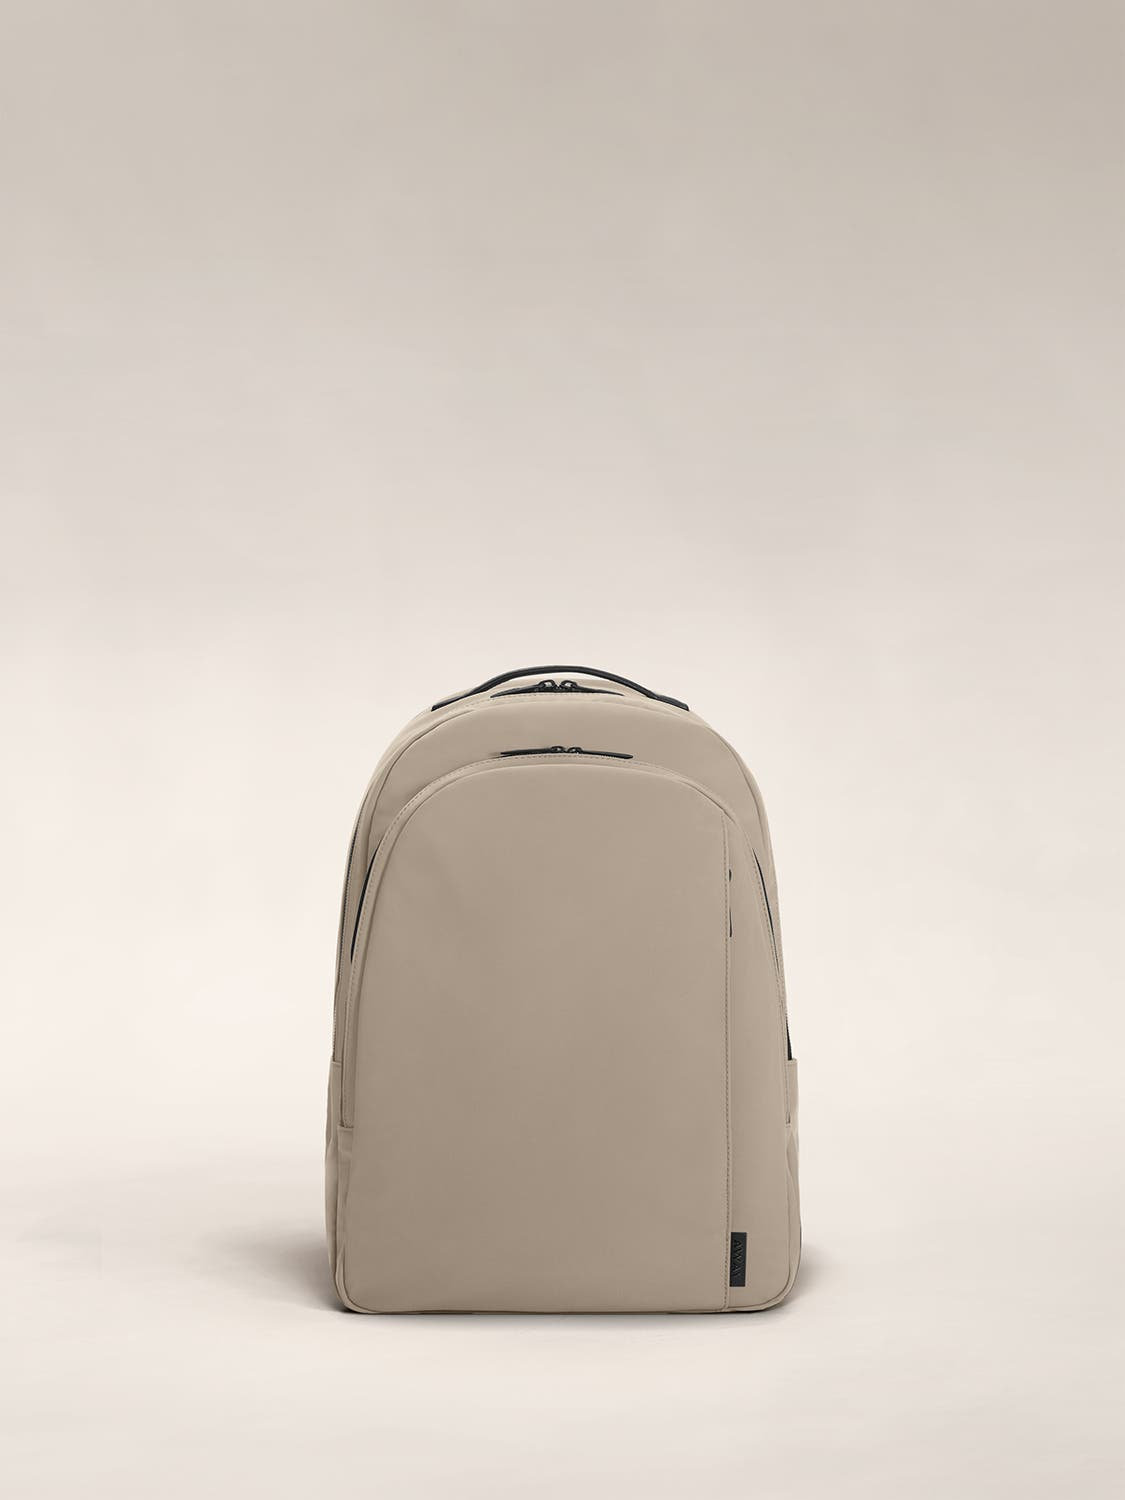 Sand color backpack with one large zip compartment and one small one.